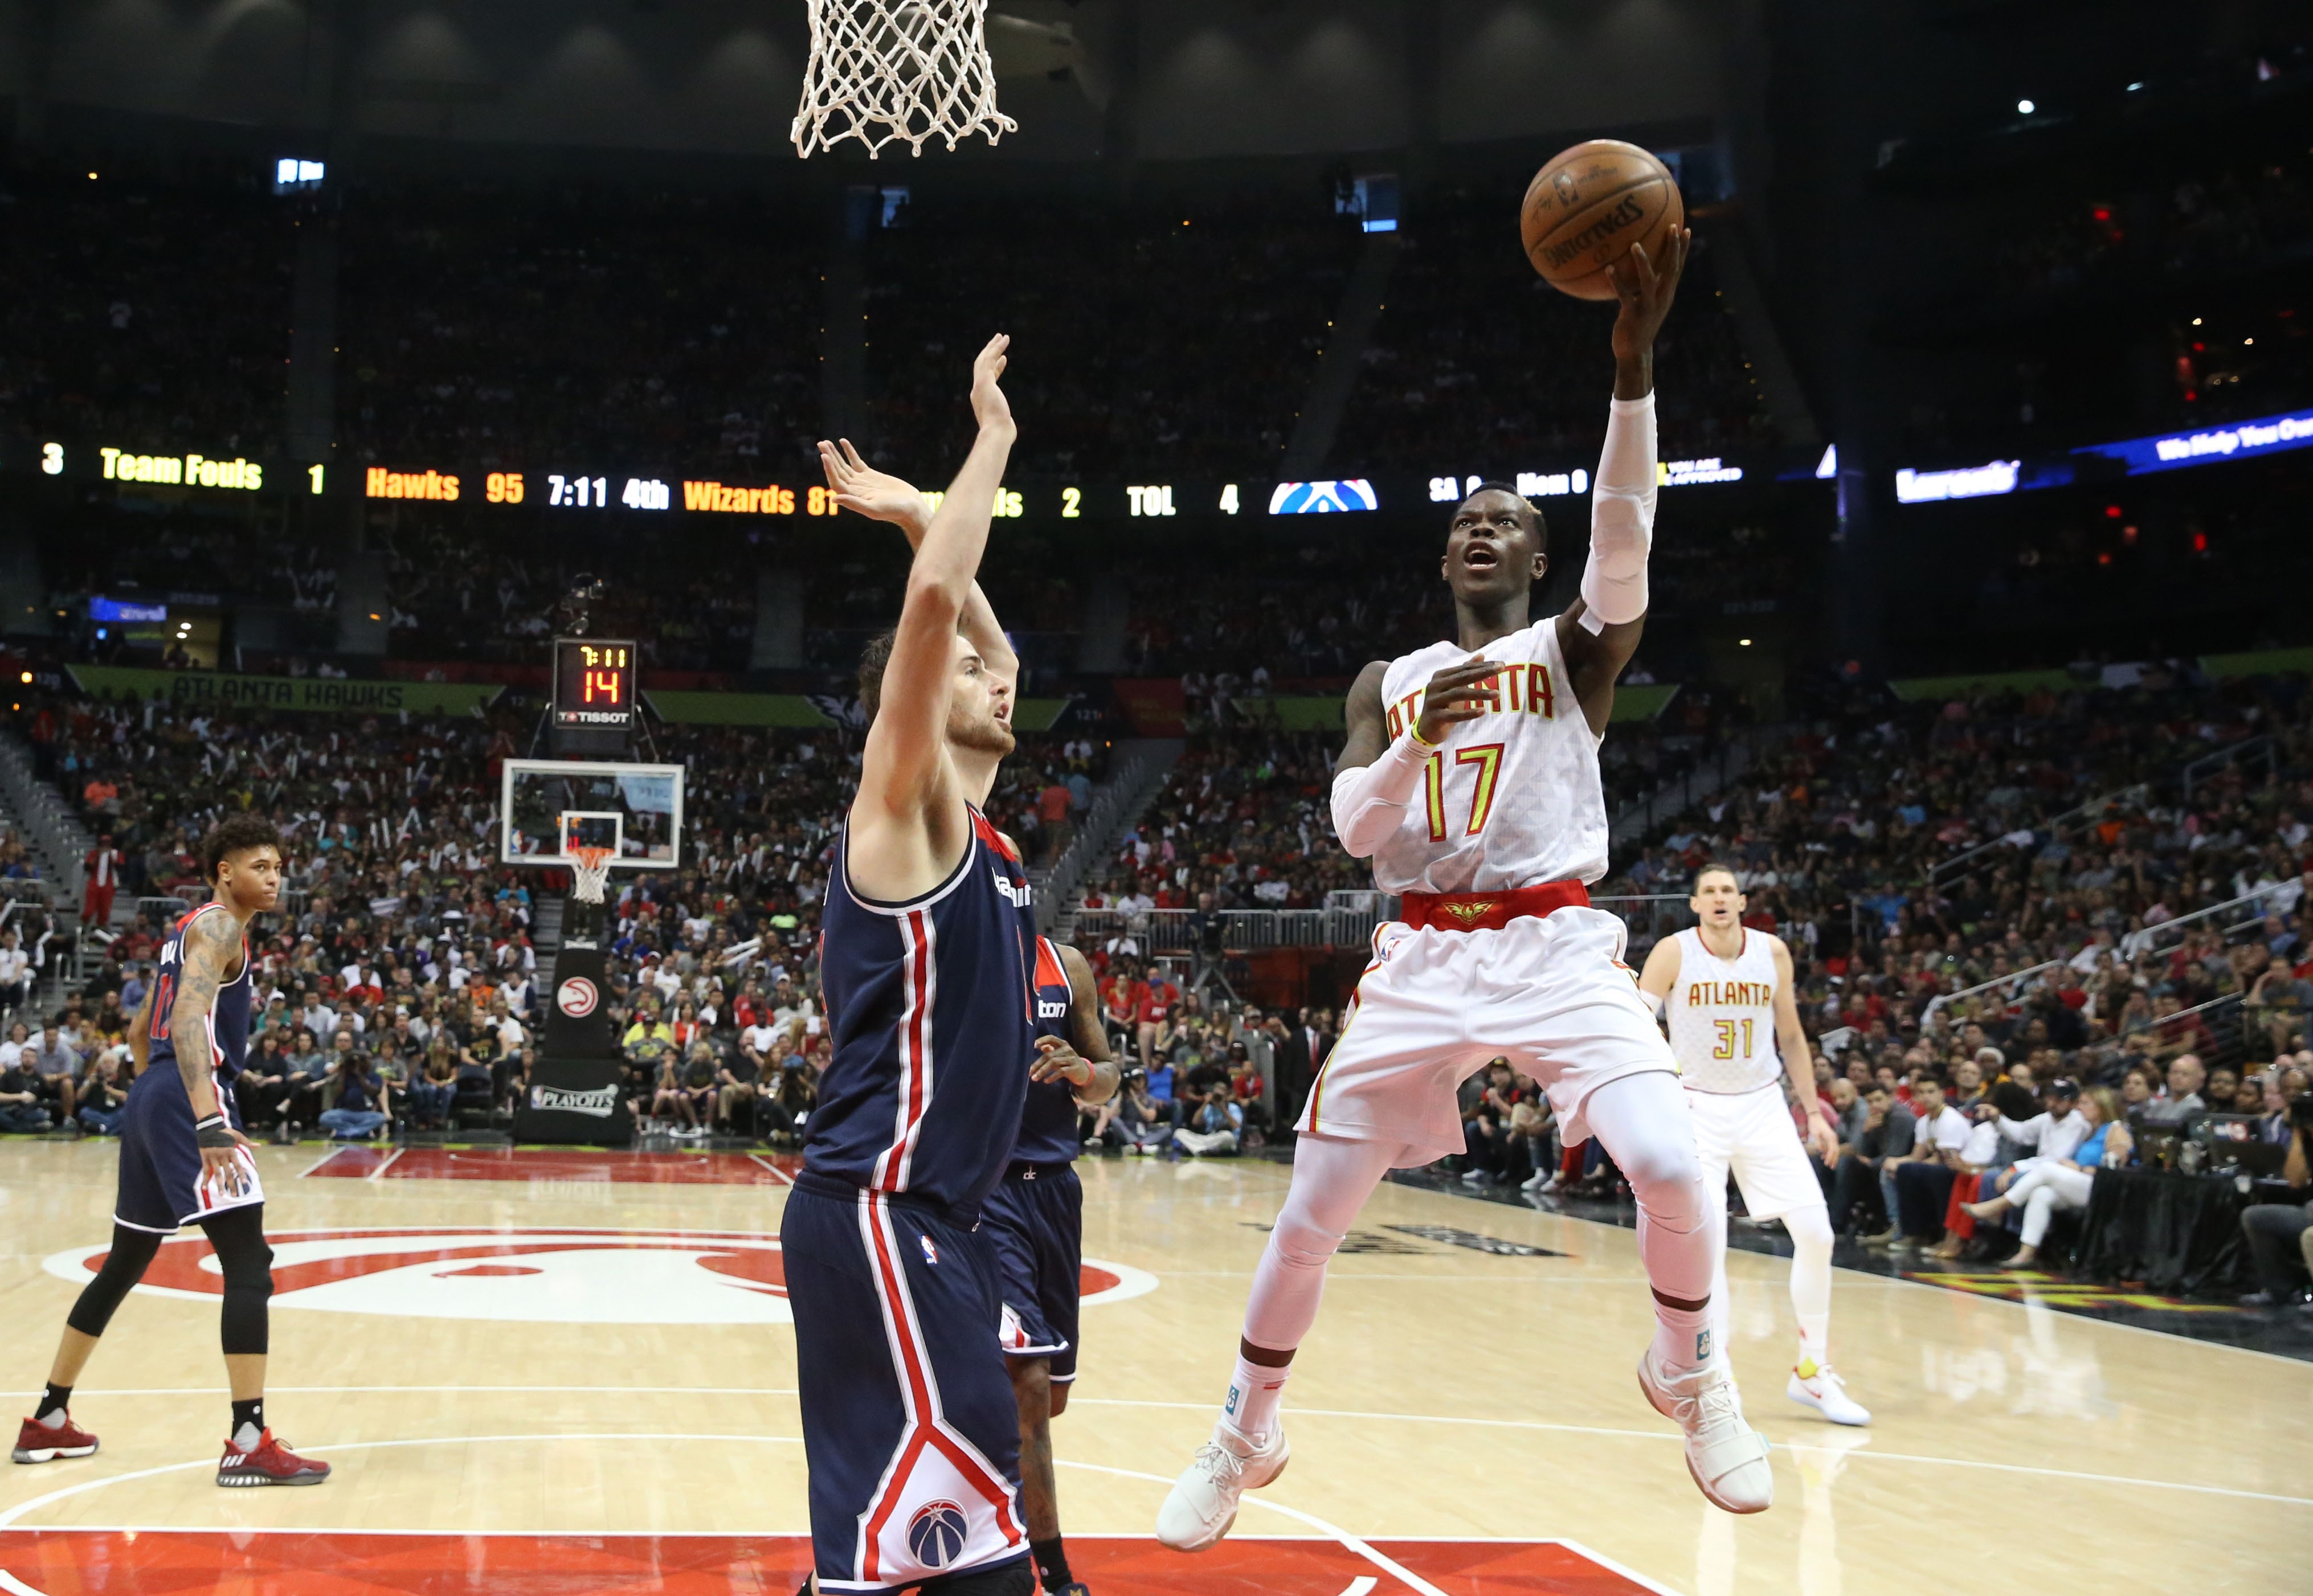 10026231-nba-playoffs-washington-wizards-at-atlanta-hawks